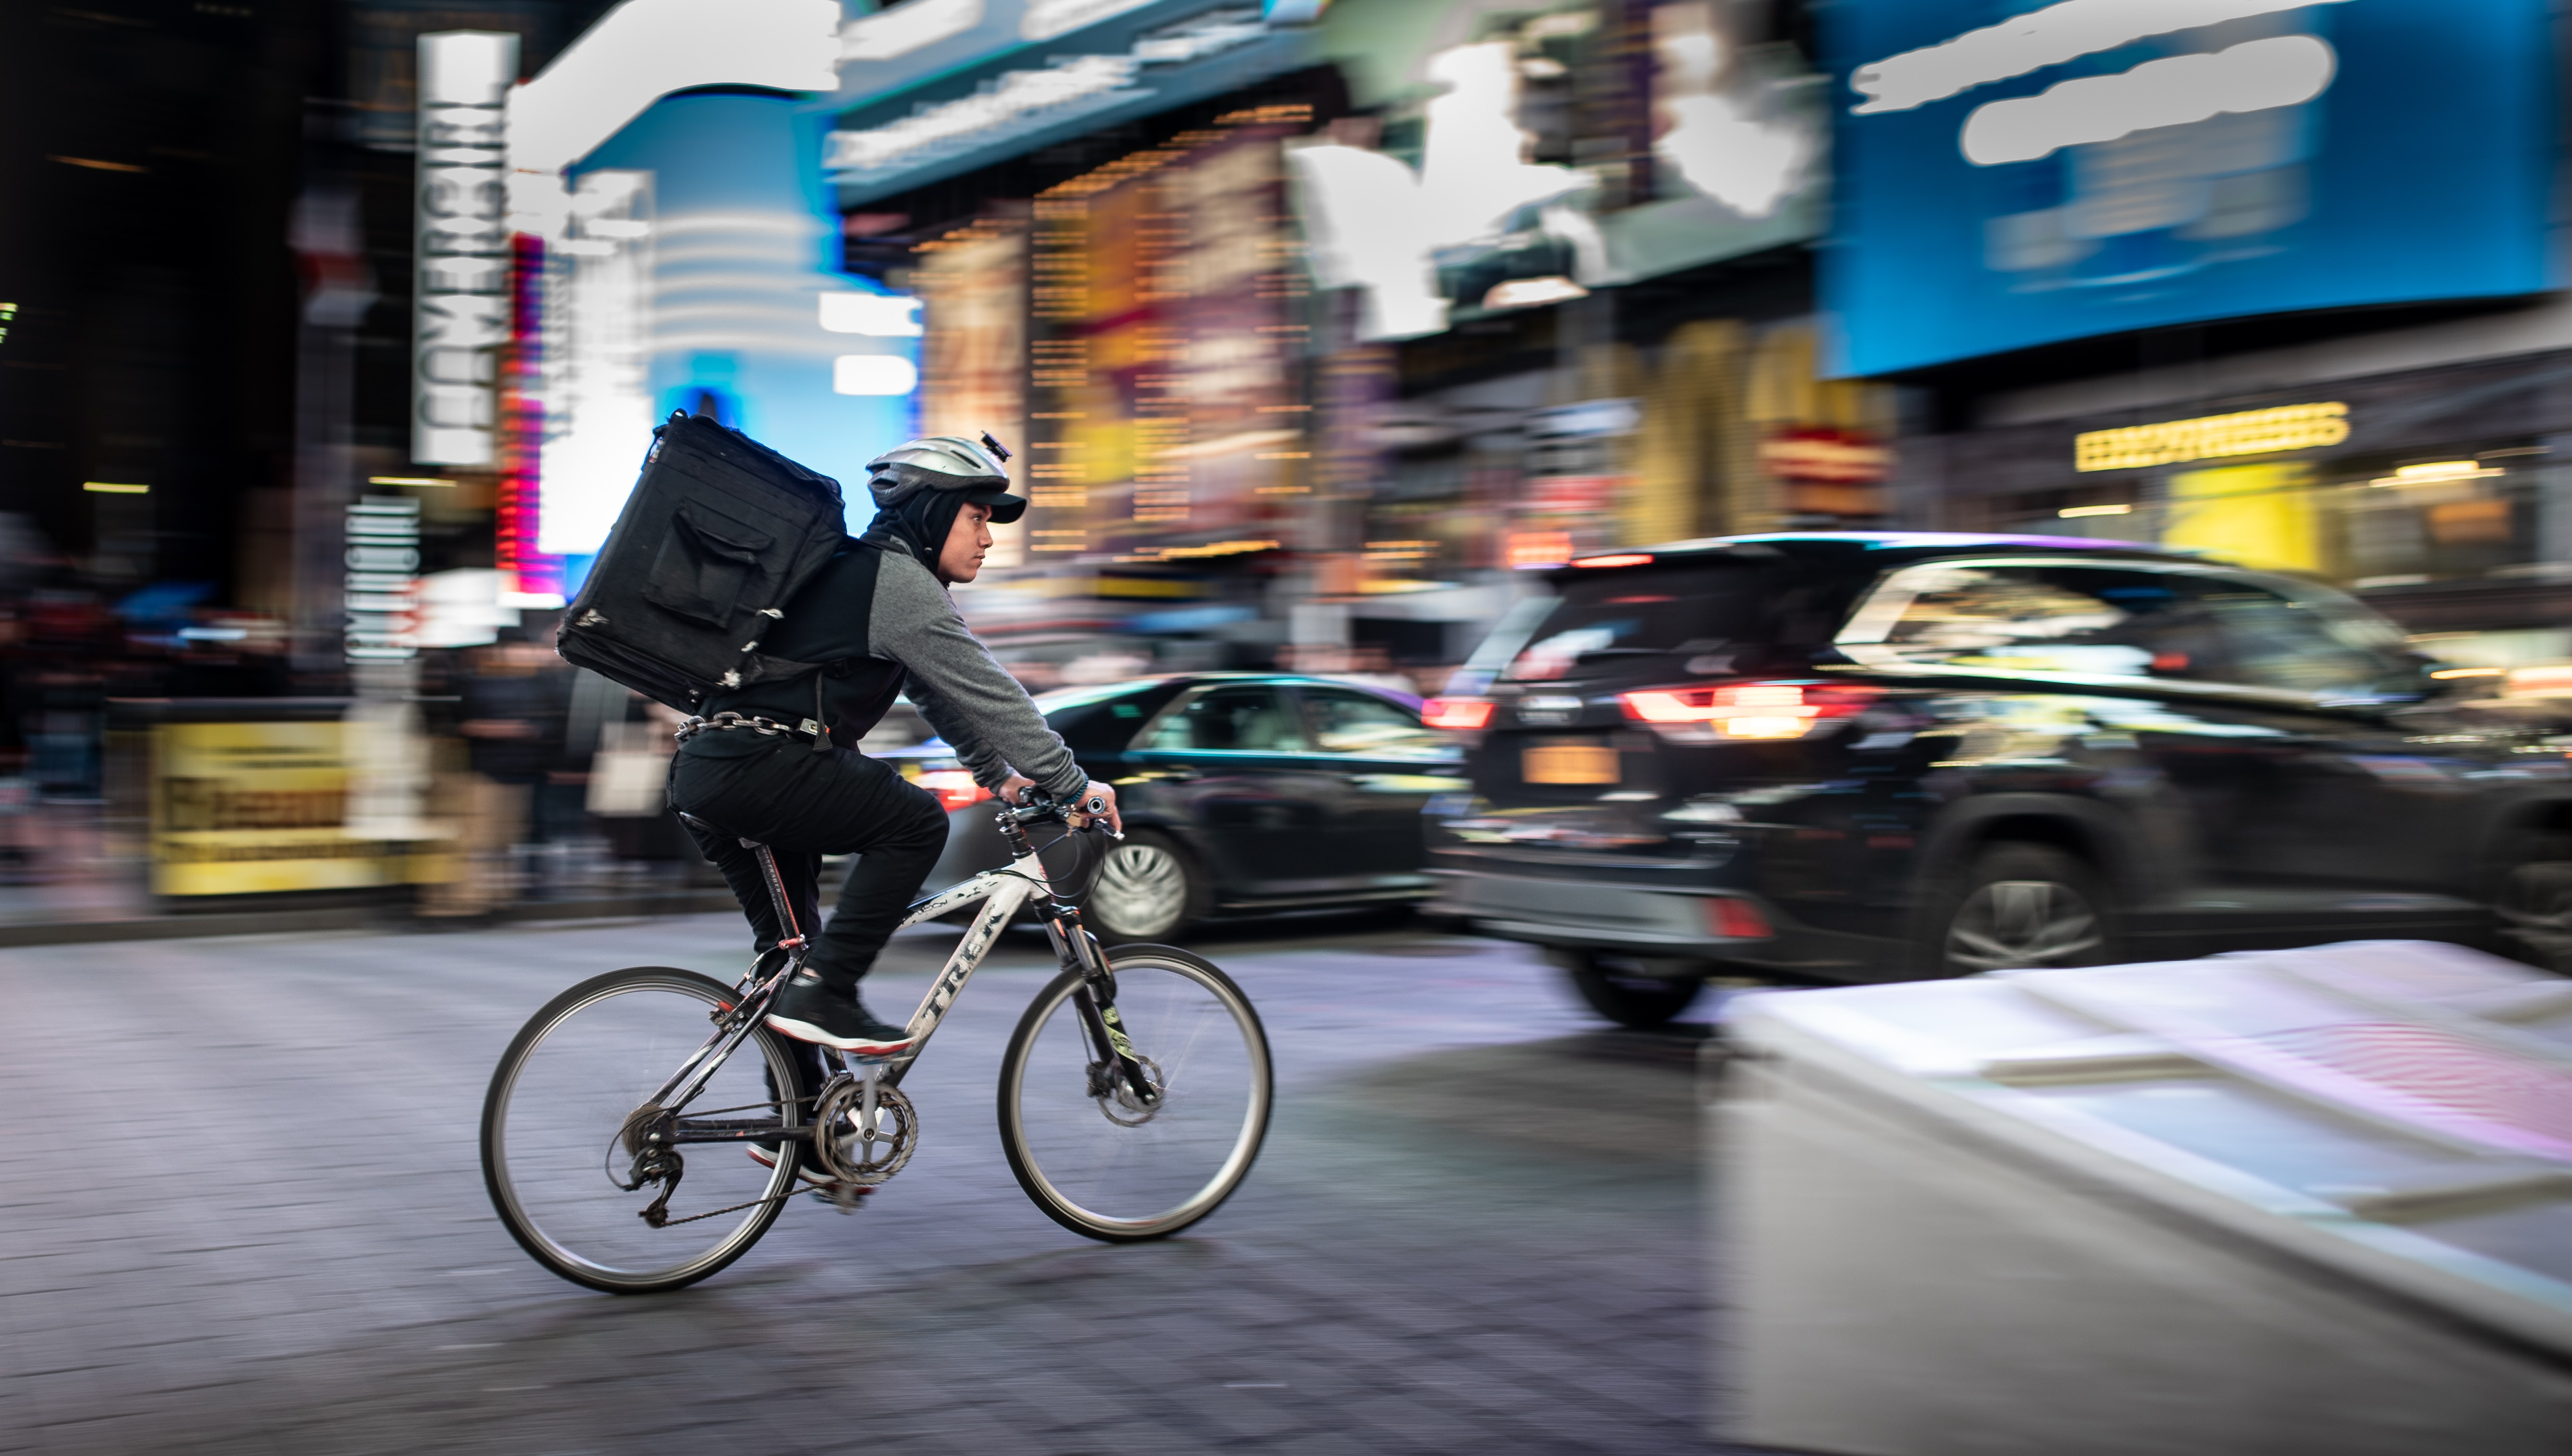 man riding bicycle near vehicles